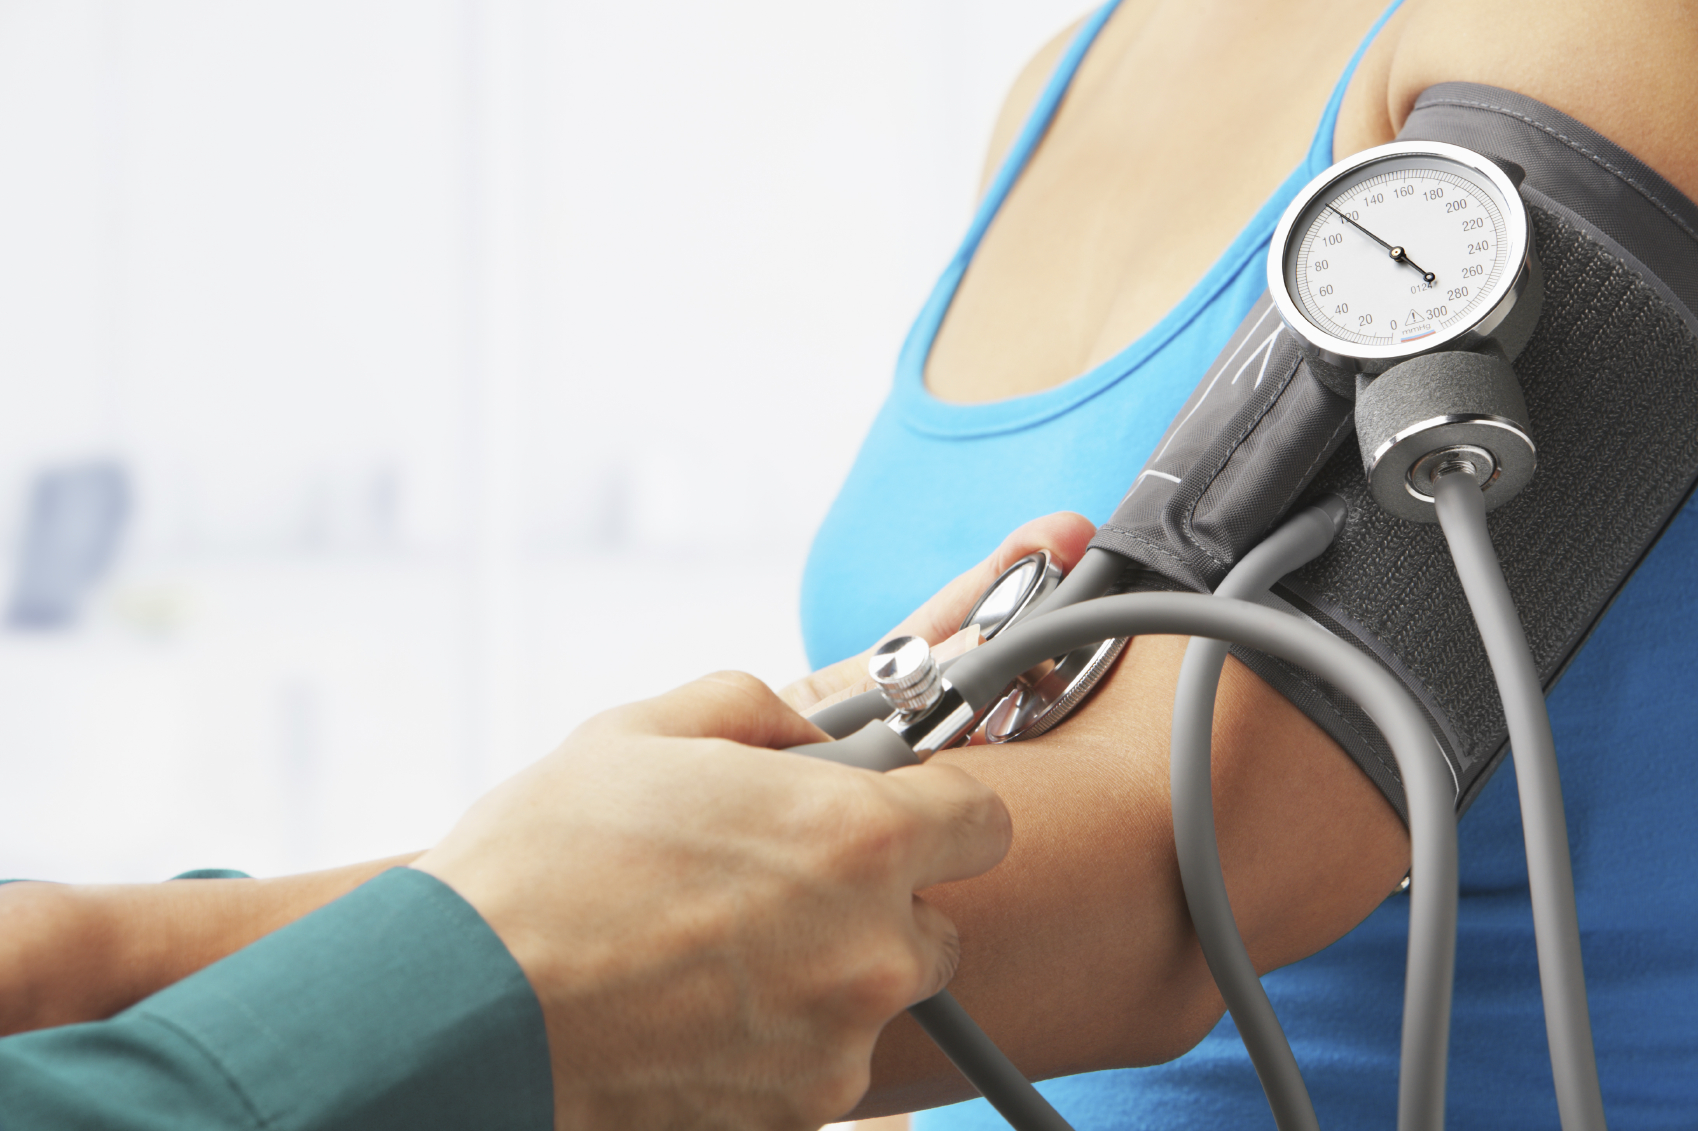 Mild High Blood Pressure In Young Adults Linked To Heart